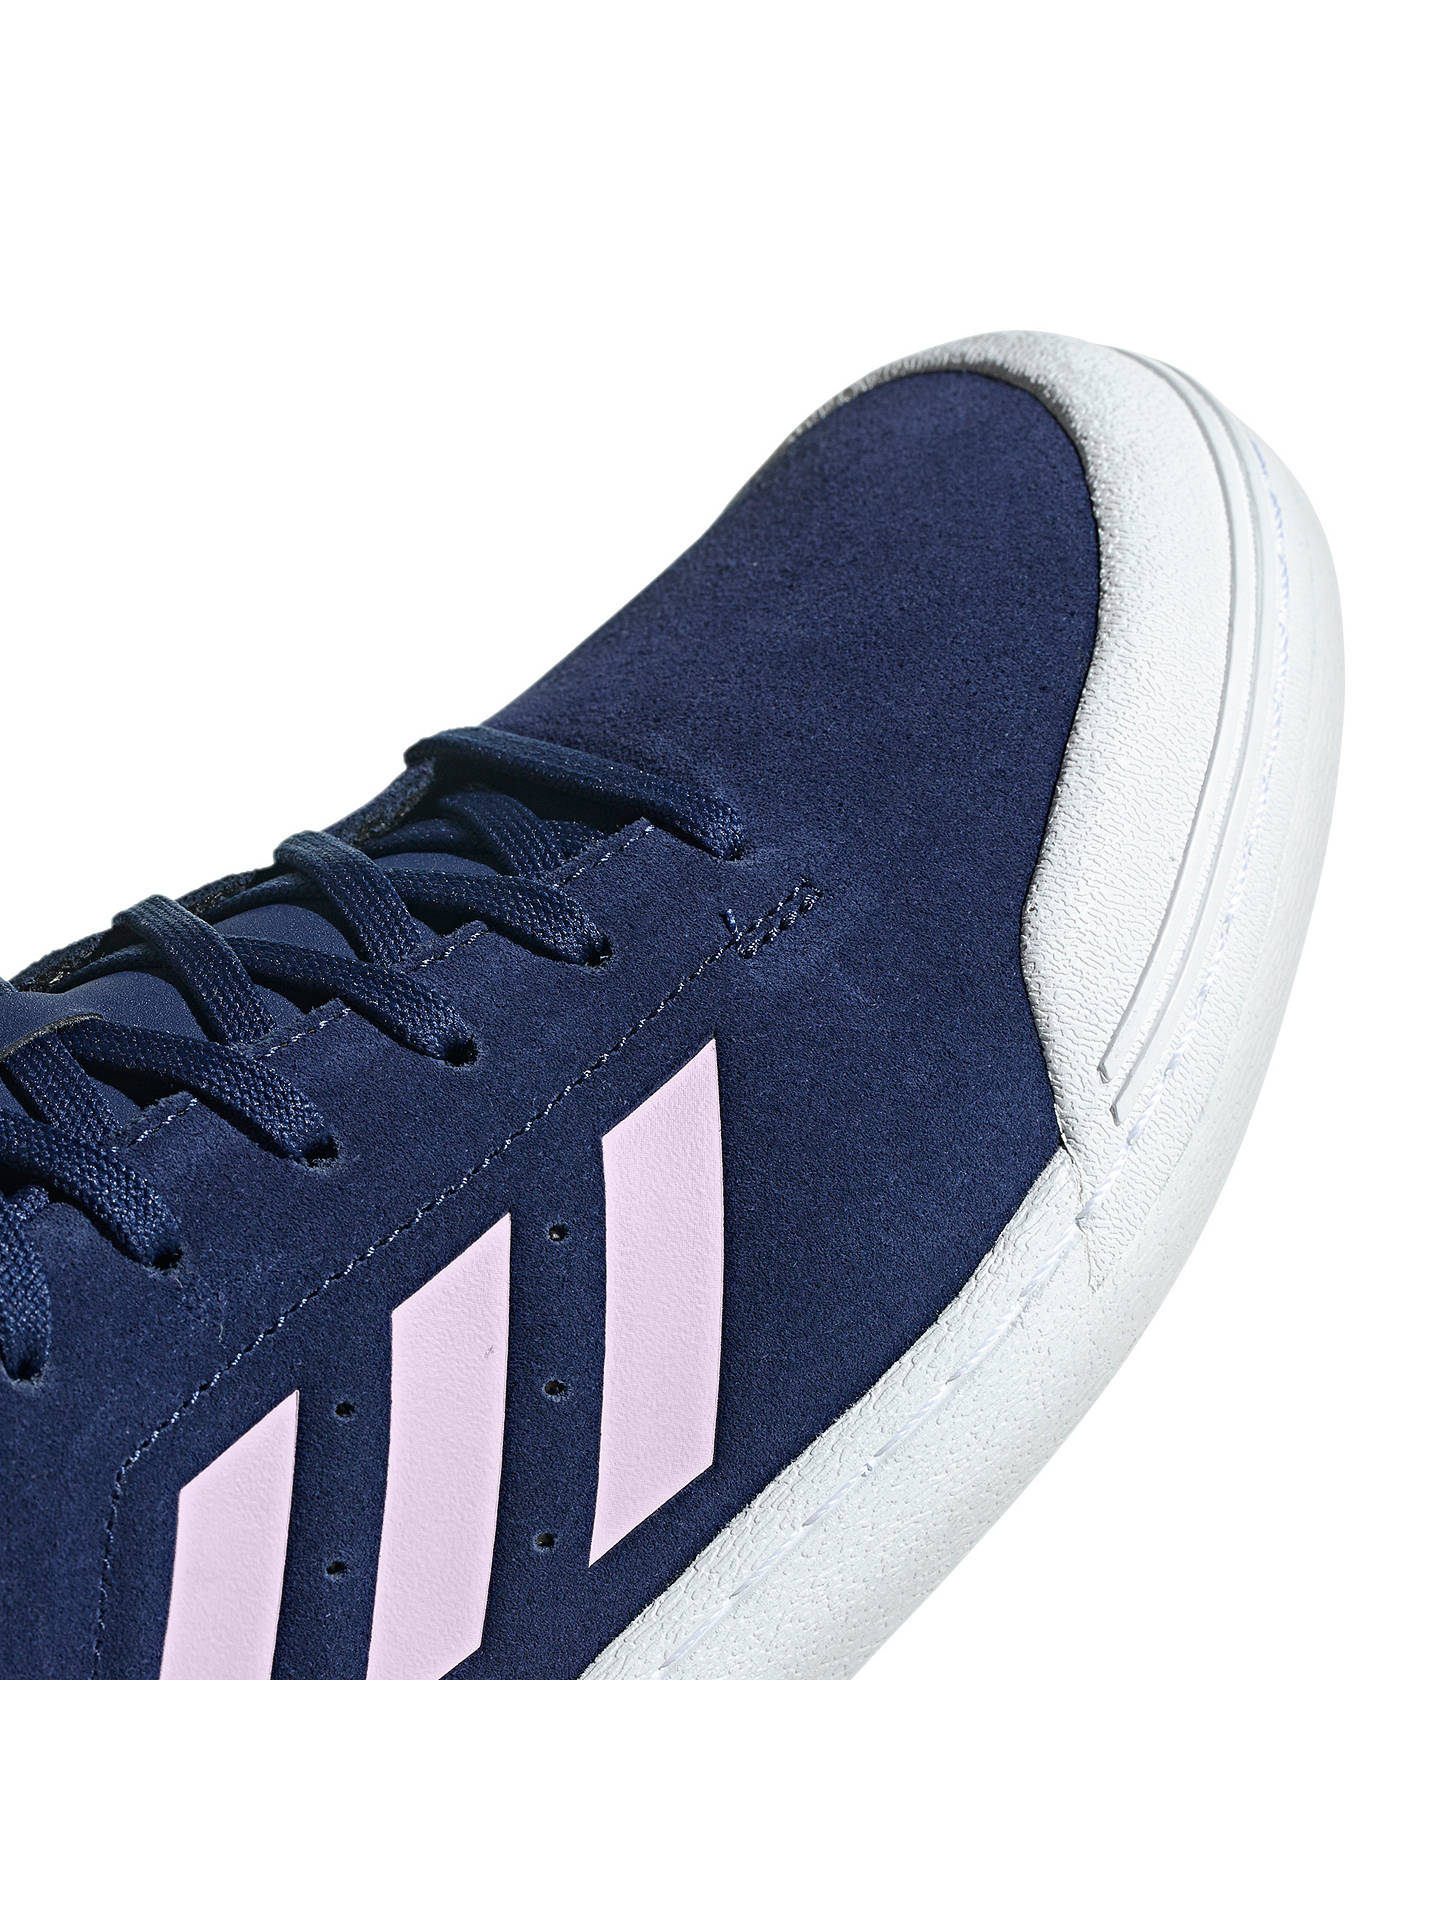 Buy adidas Court 70s Men's Trainers, Dark Blue/Cloud White, 8 Online at johnlewis.com